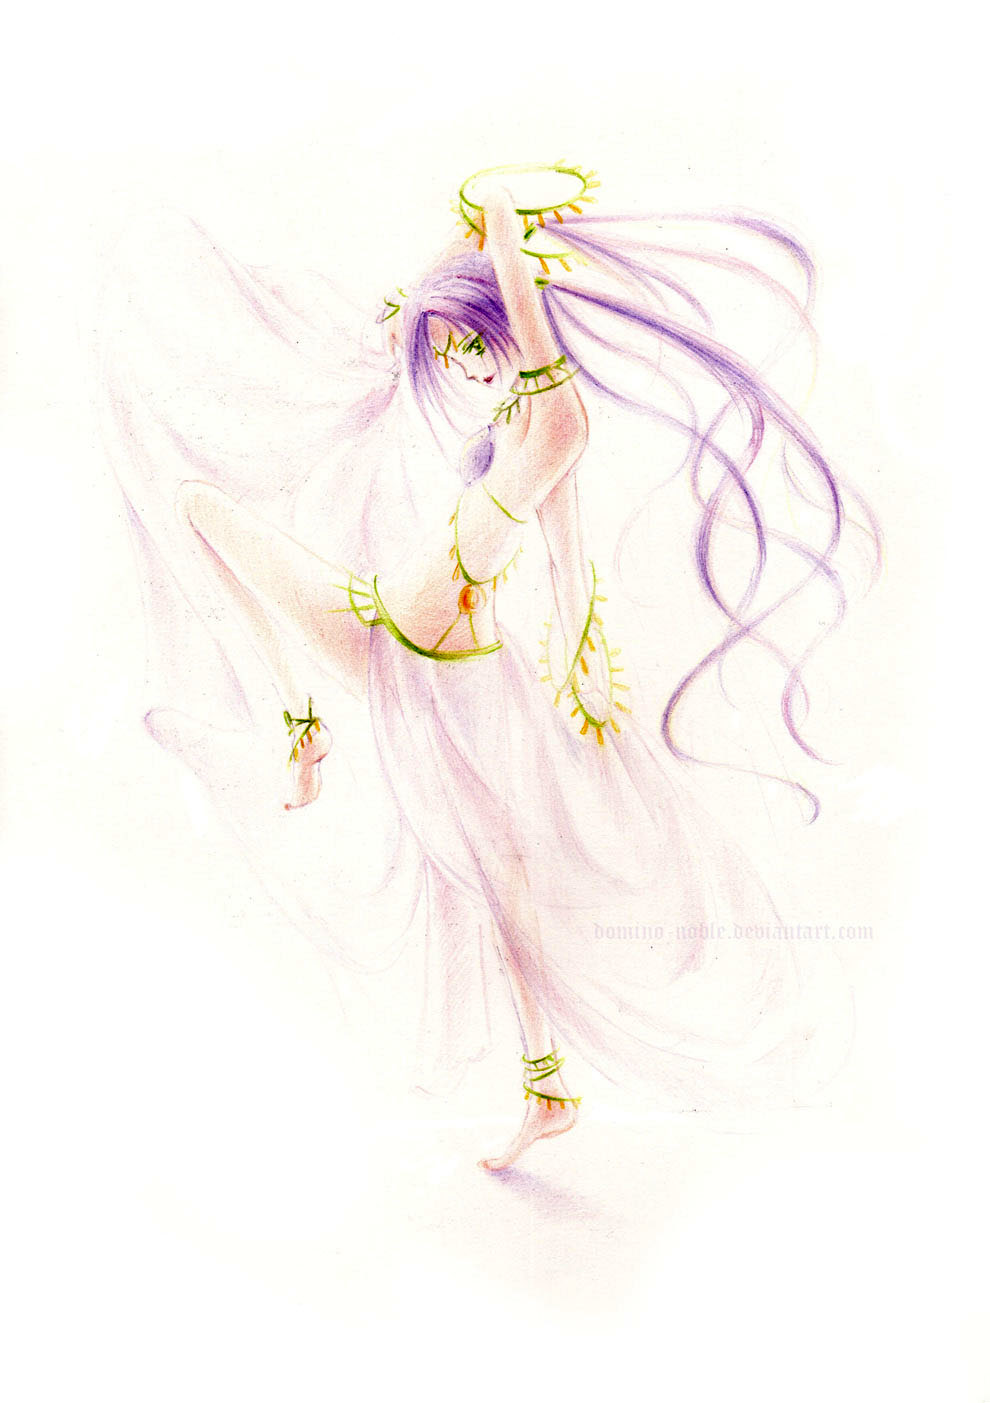 Danseuse by Domino-noble